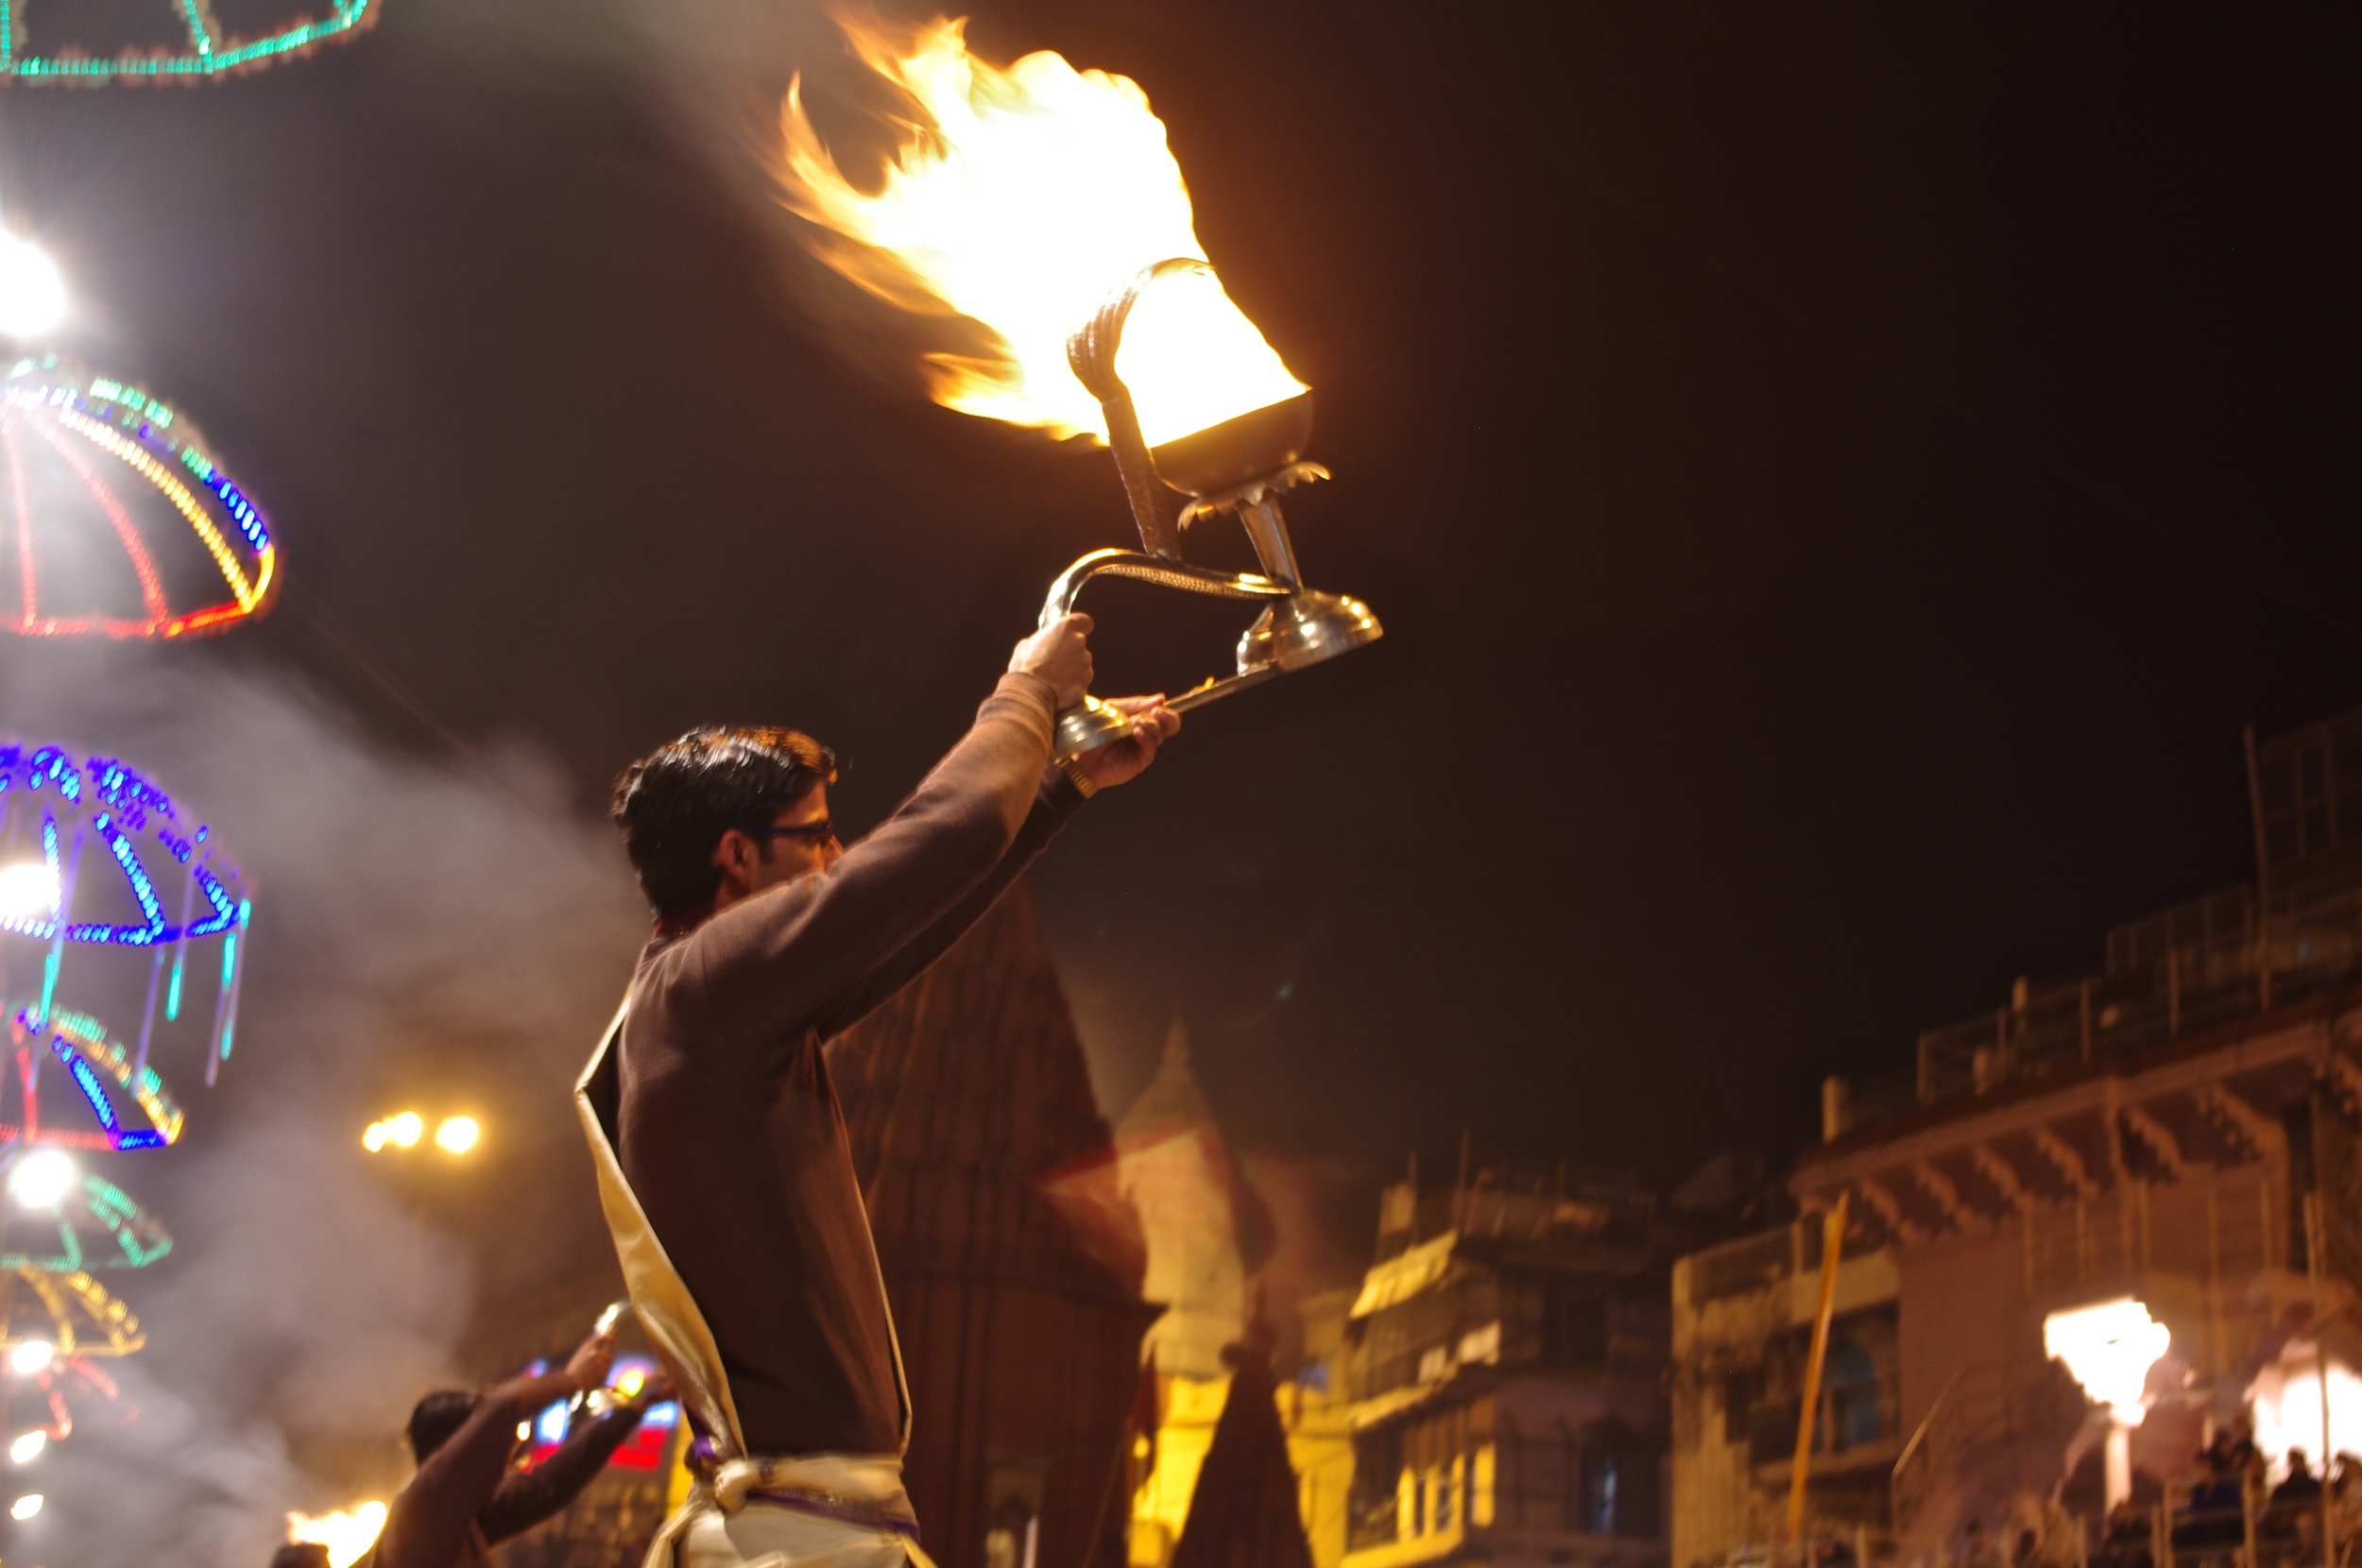 Fire Ceremony on the Ghats of the Ganges